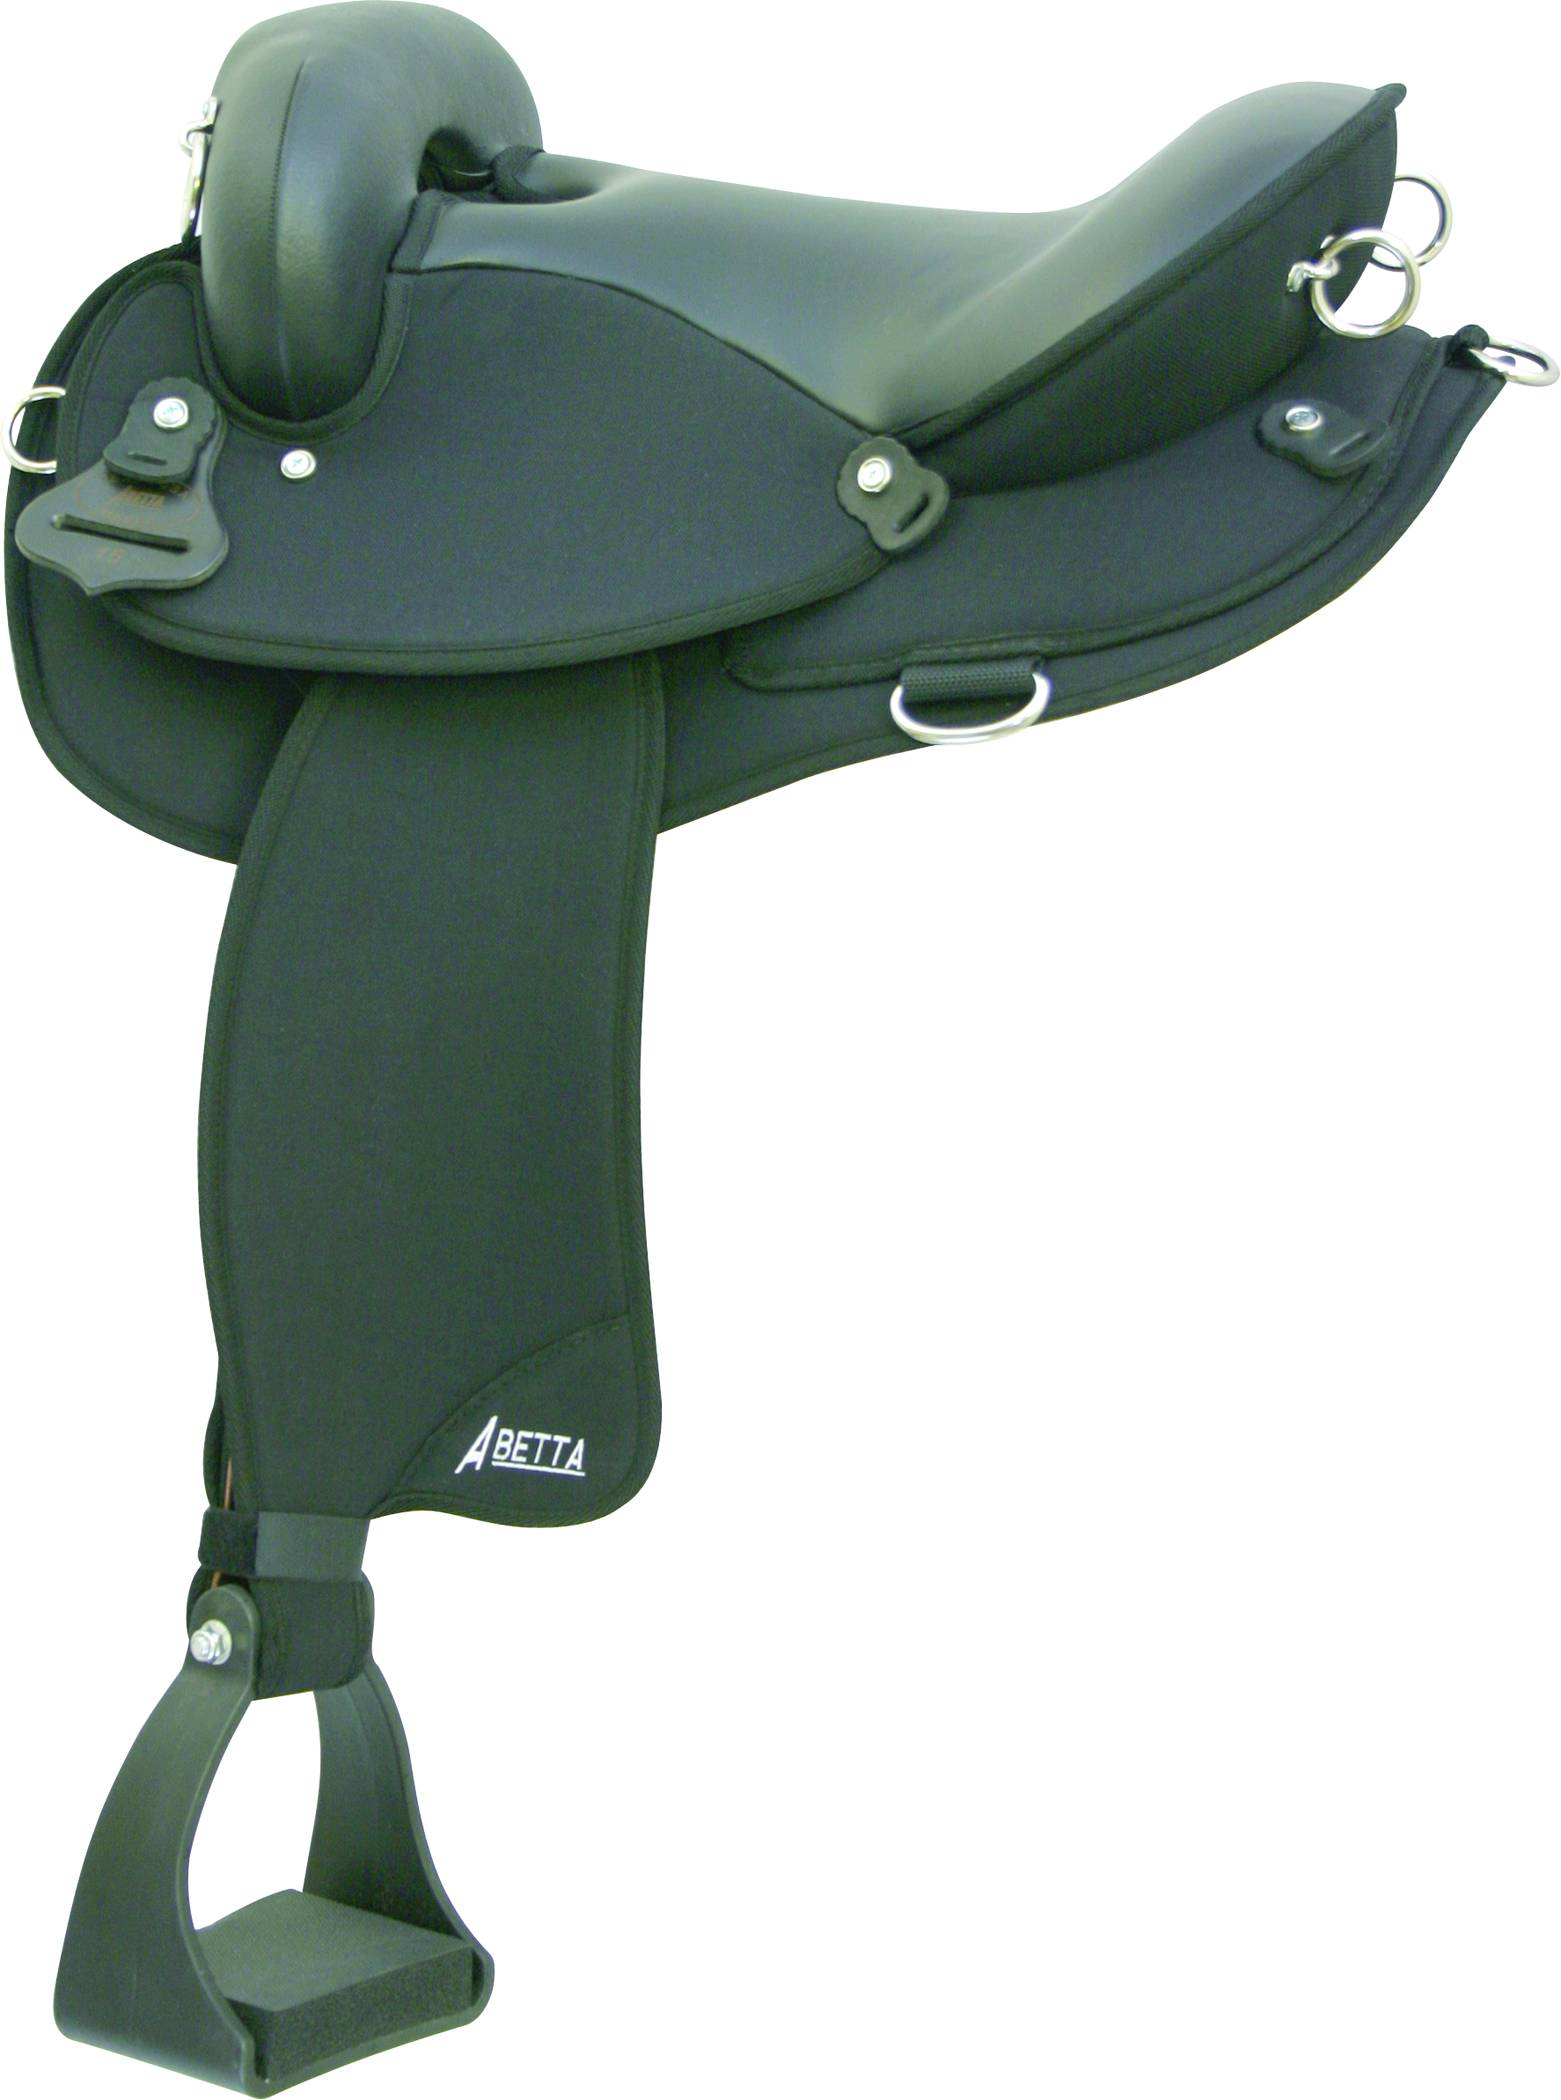 Abetta Gaited Comfort Endurance Saddle